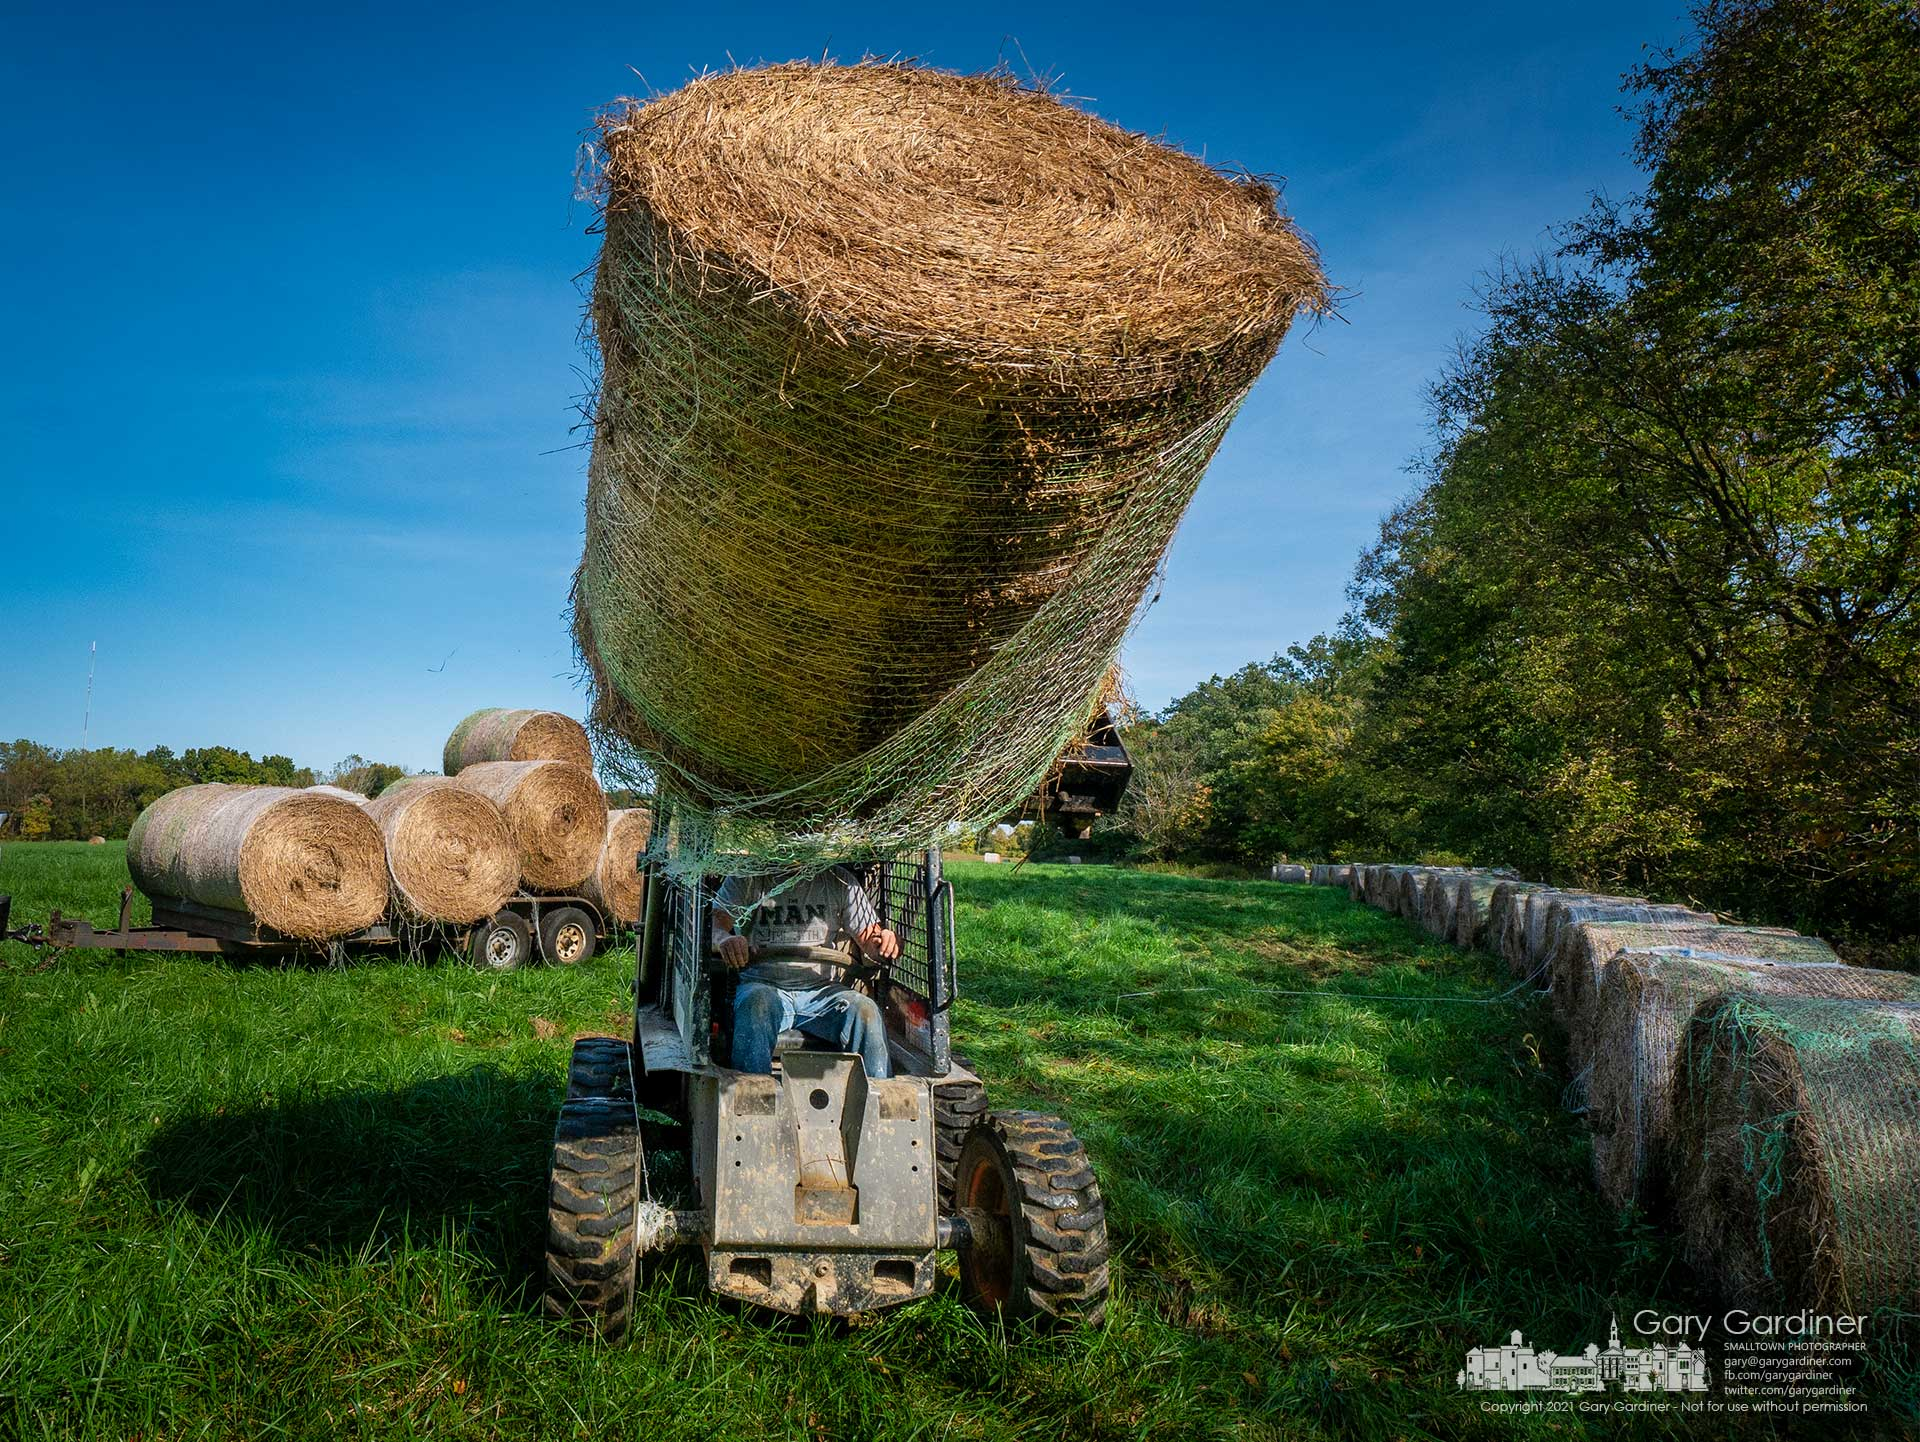 Round hay bales are moved to the edge of the field for temporary storage and to allow the field to grow for what may be another fresh cut before winter. My Final Photo for Oct. 13, 2021.